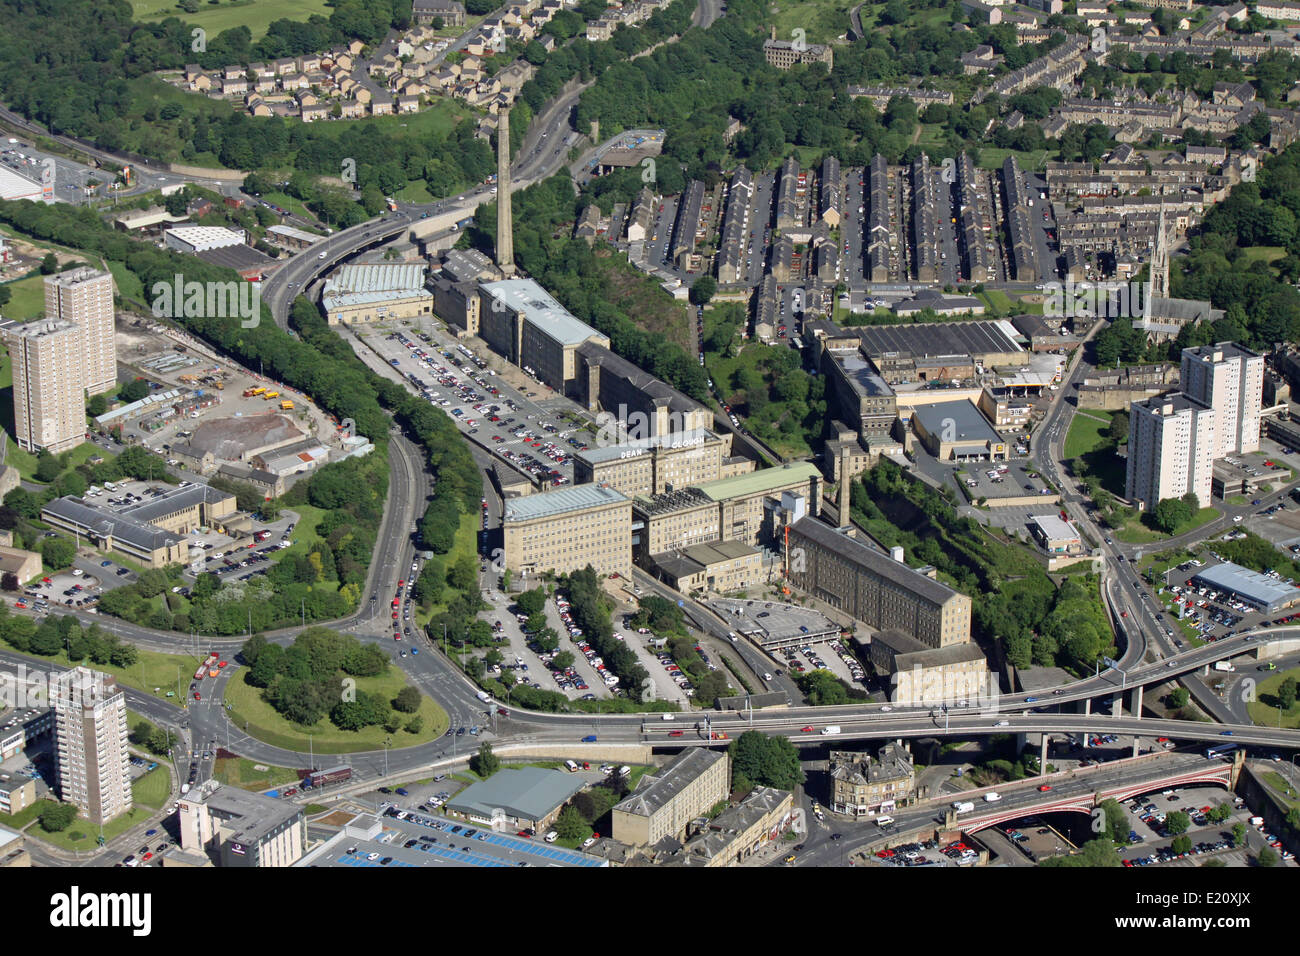 aerial view of Dean Clough Mills in Halifax, West Yorkshire, UK Stock Photo